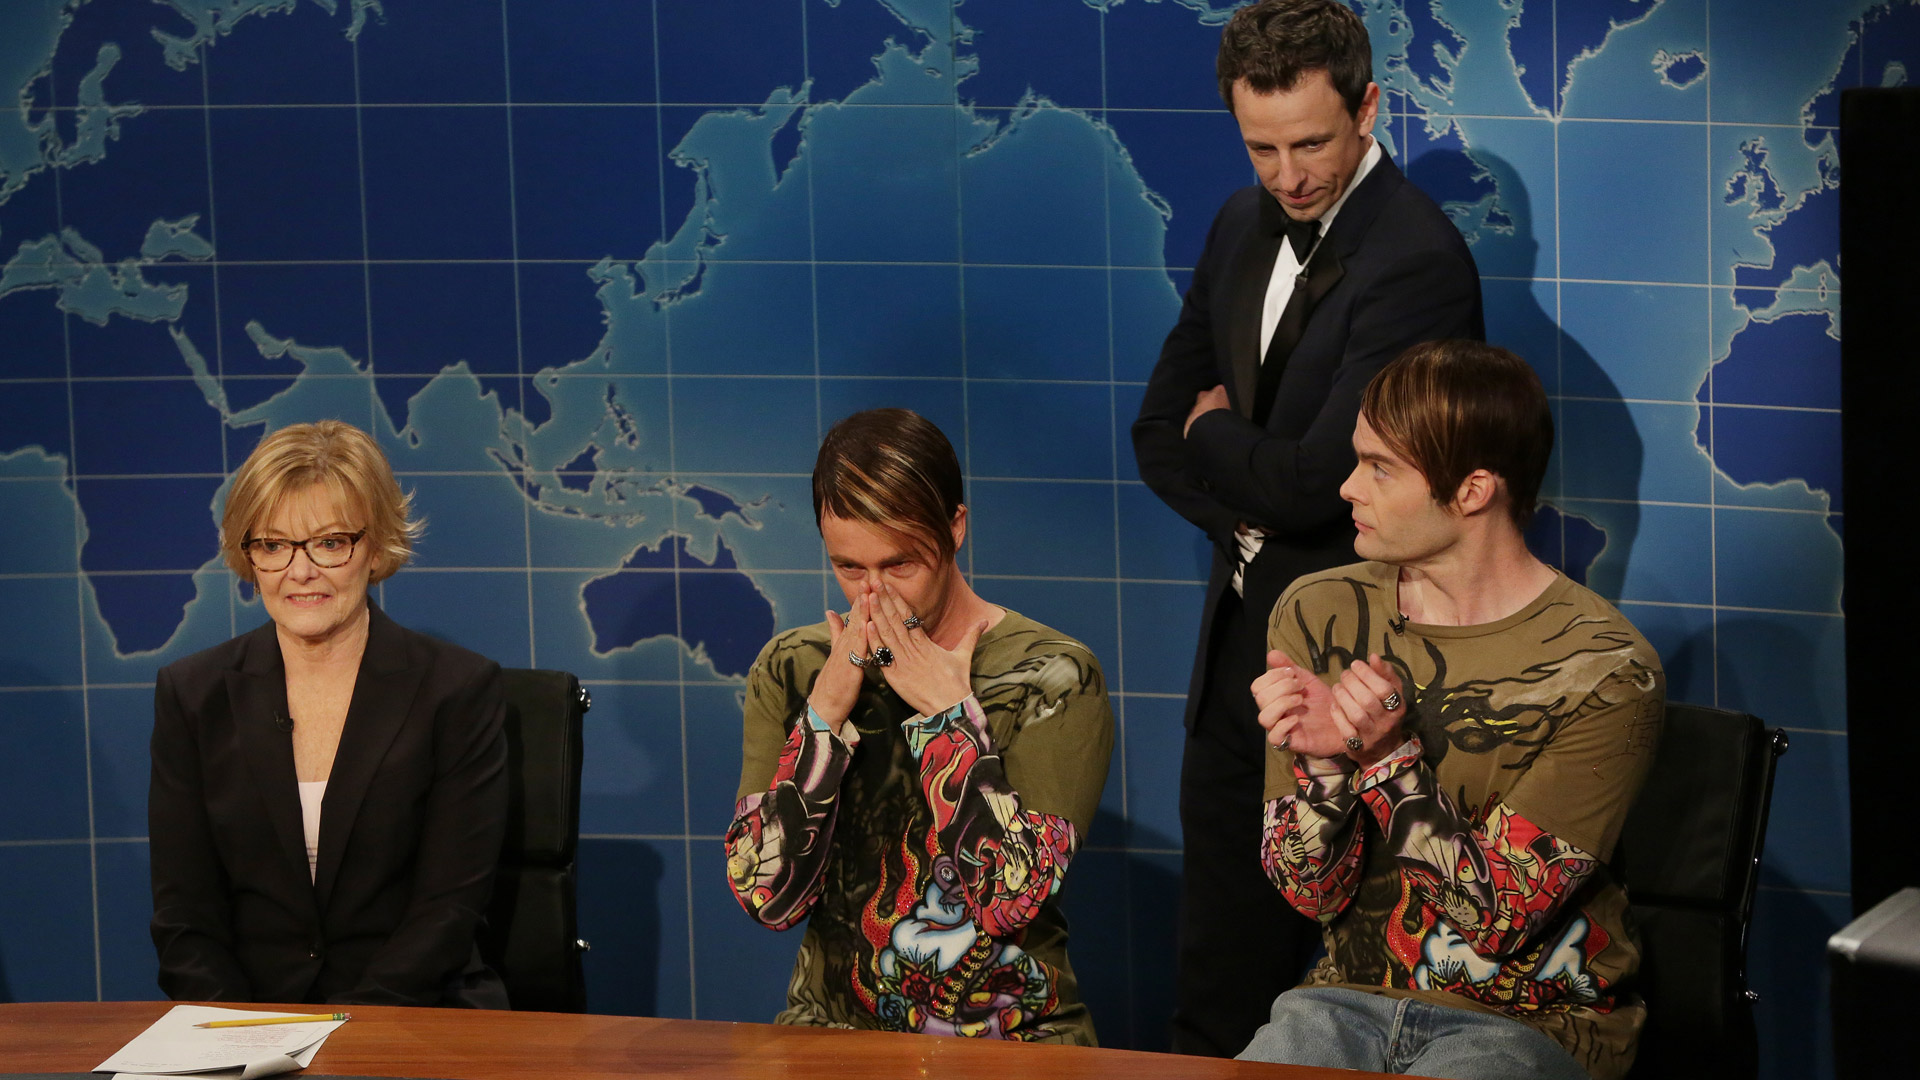 ... SNL40: Weekend Update – Stefon From Saturday Night Live - NBC.com